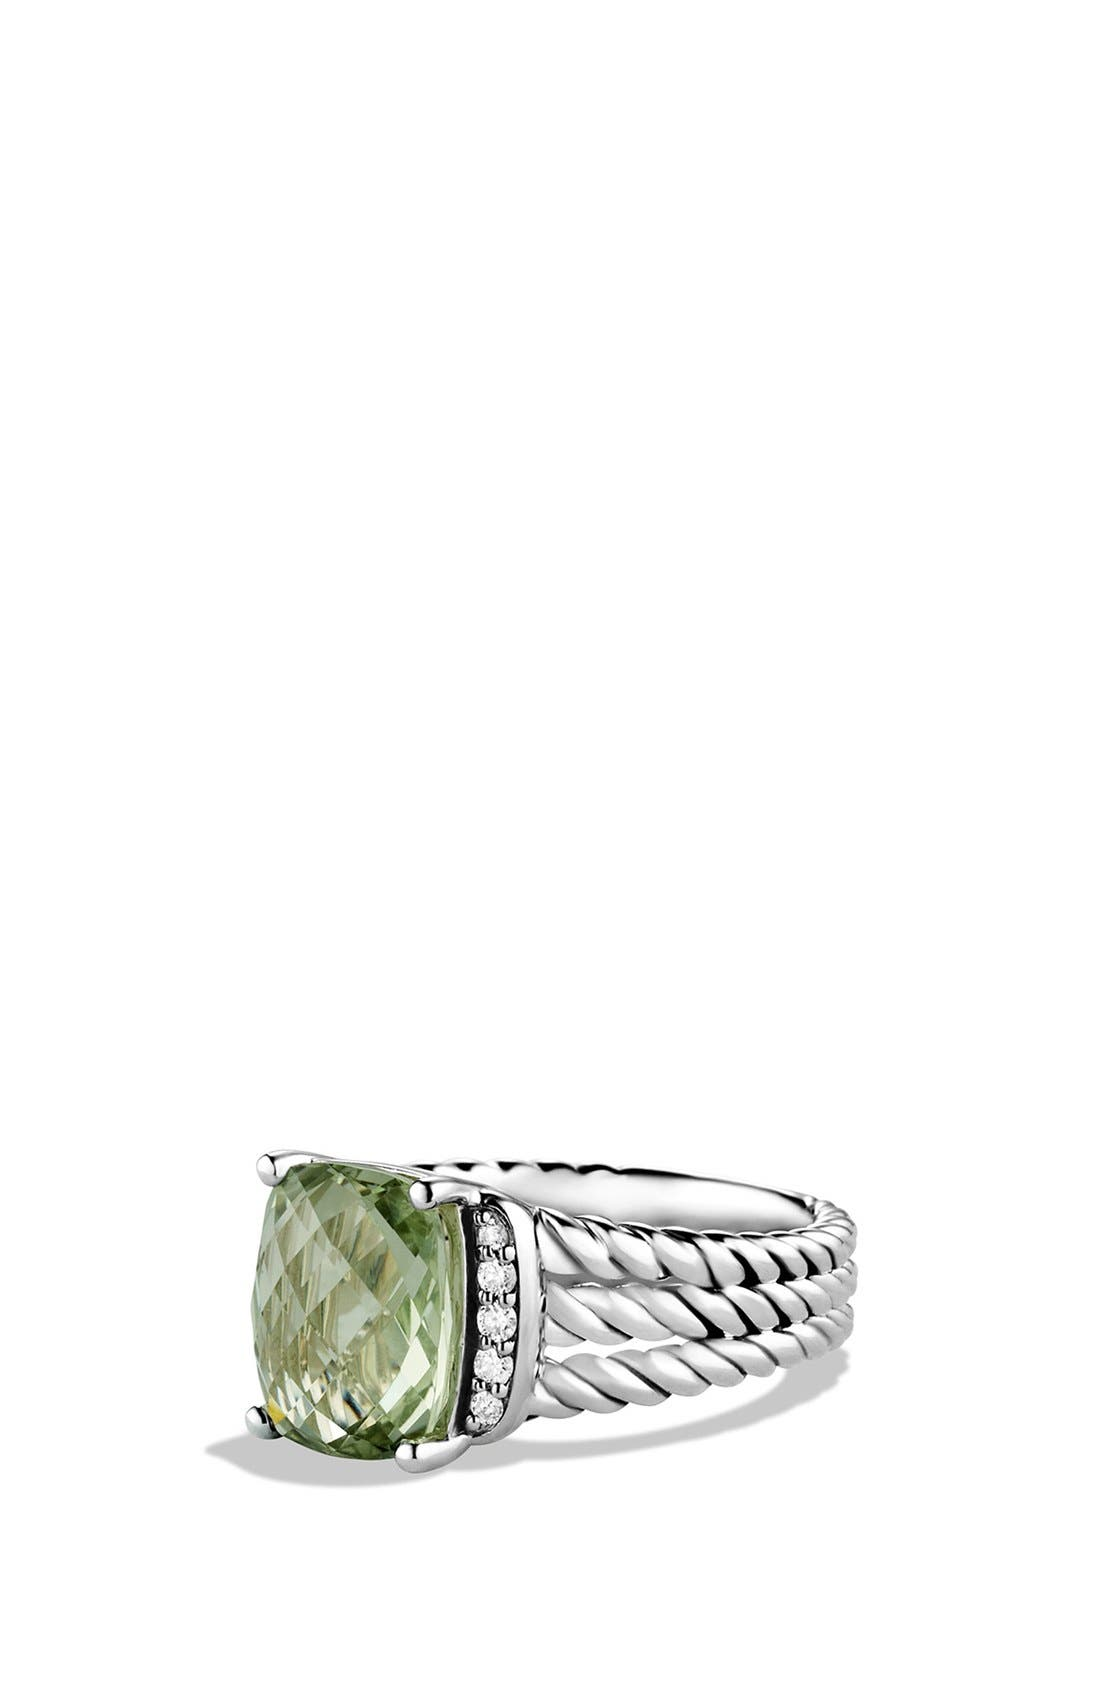 David Yurman 'Wheaton' Petite Ring with Semiprecious Stone & Diamonds